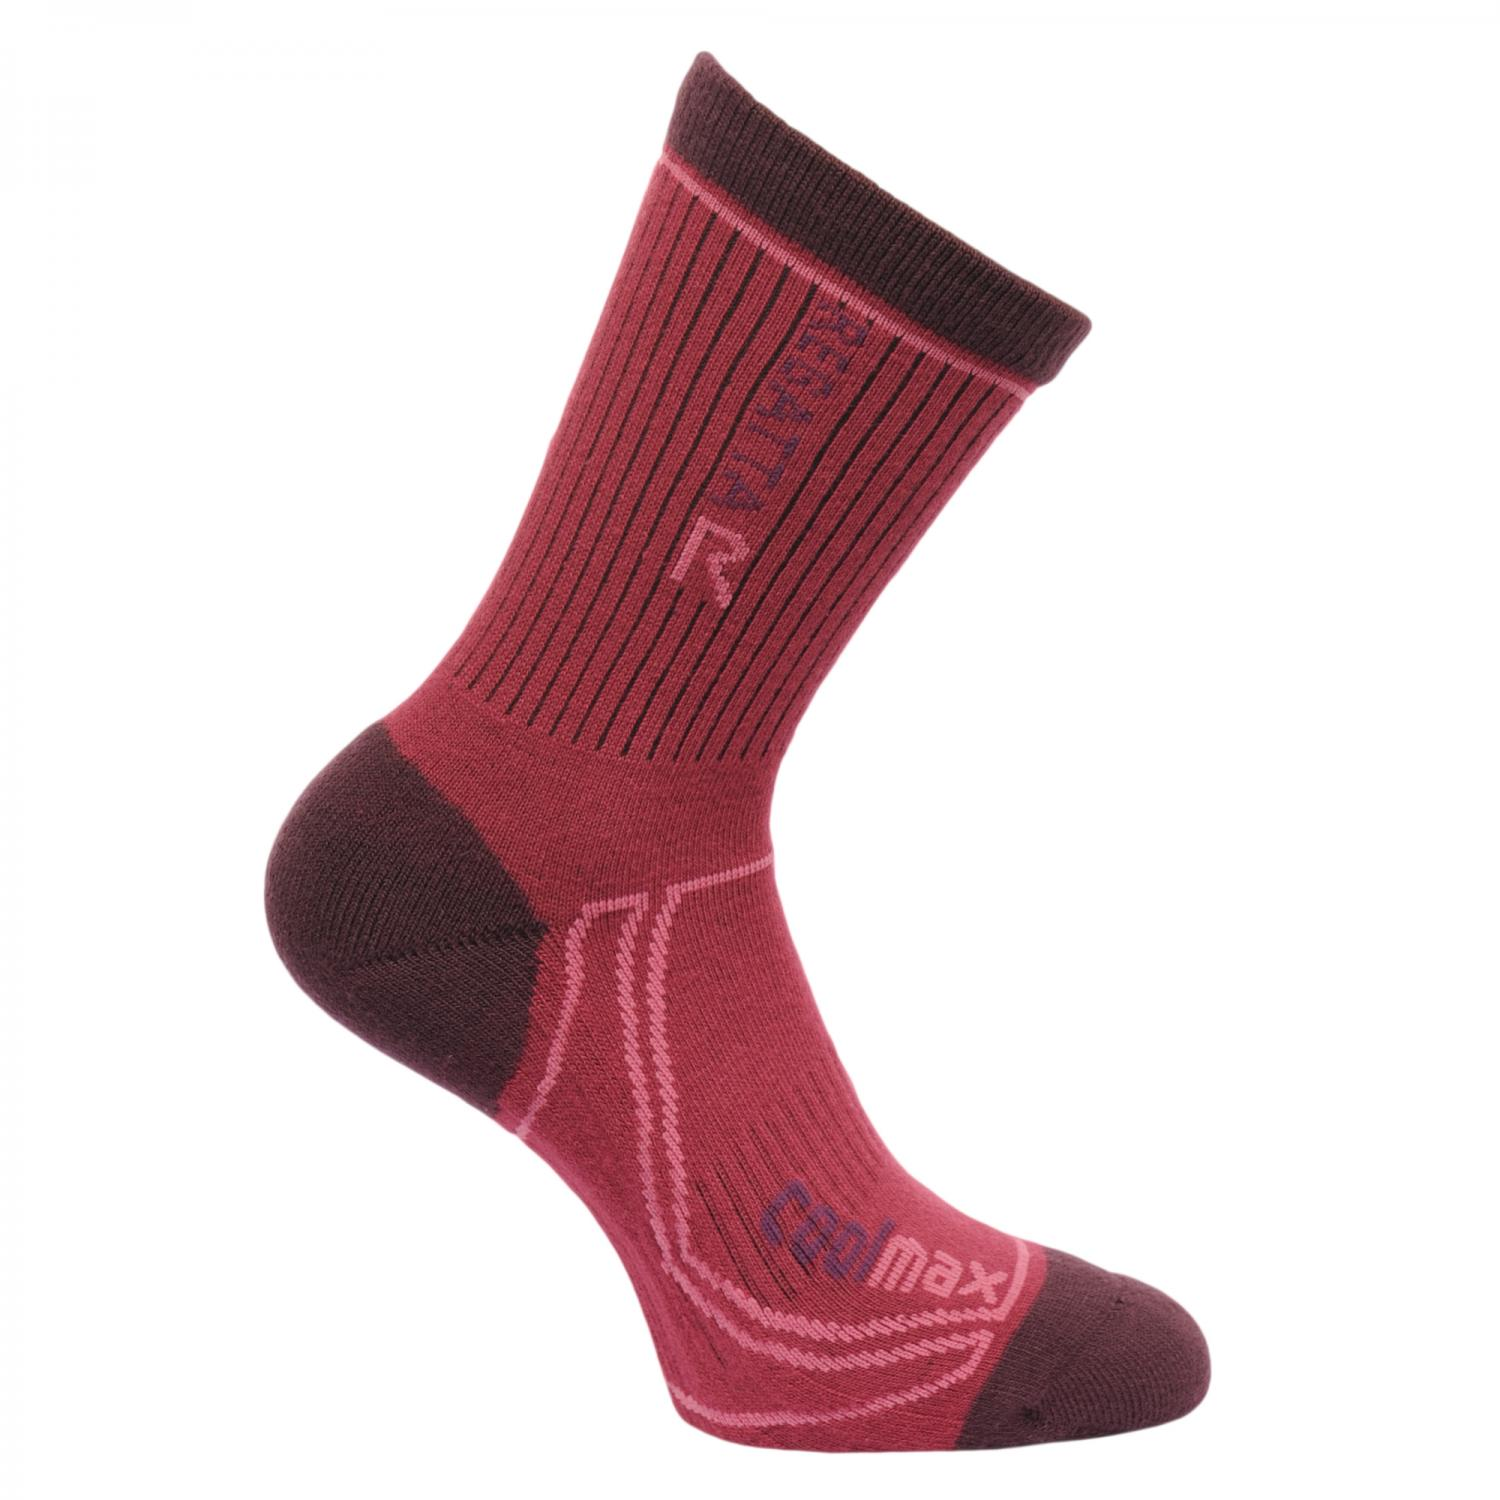 Womens 2 Season Coolmax Trek & Trail Socks Dark Burgundy